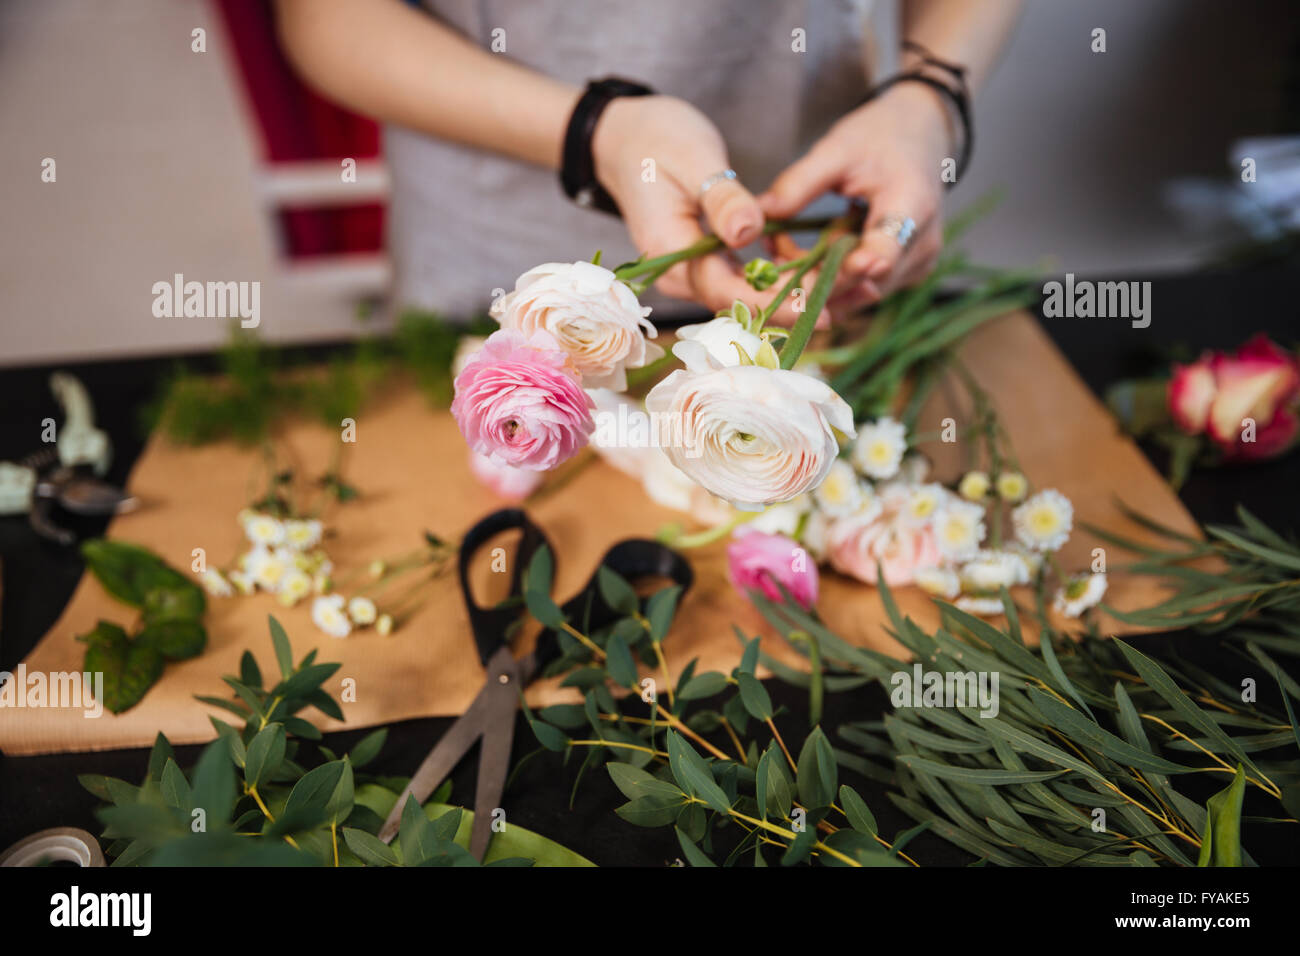 Closeup of hands of young woman florist creating bouquet of pink roses on the table - Stock Image